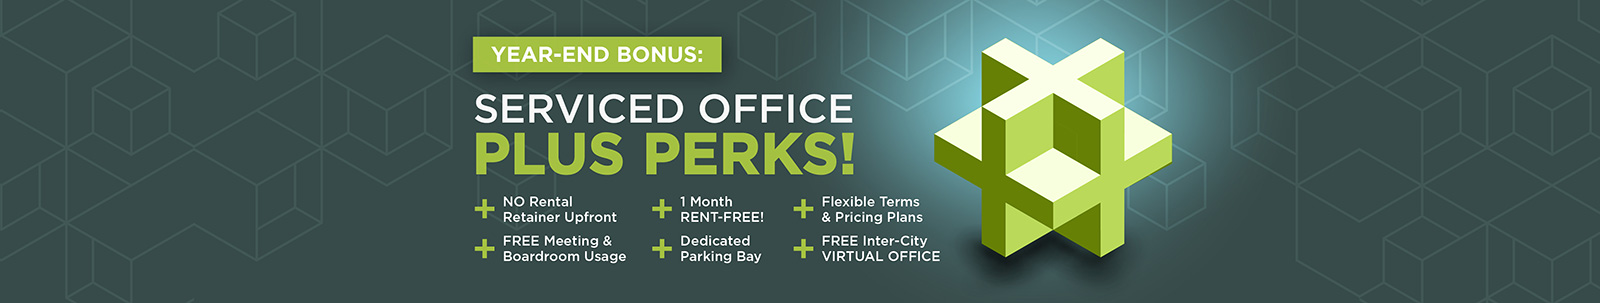 Serviced Office Plus Perks Homepage Banner